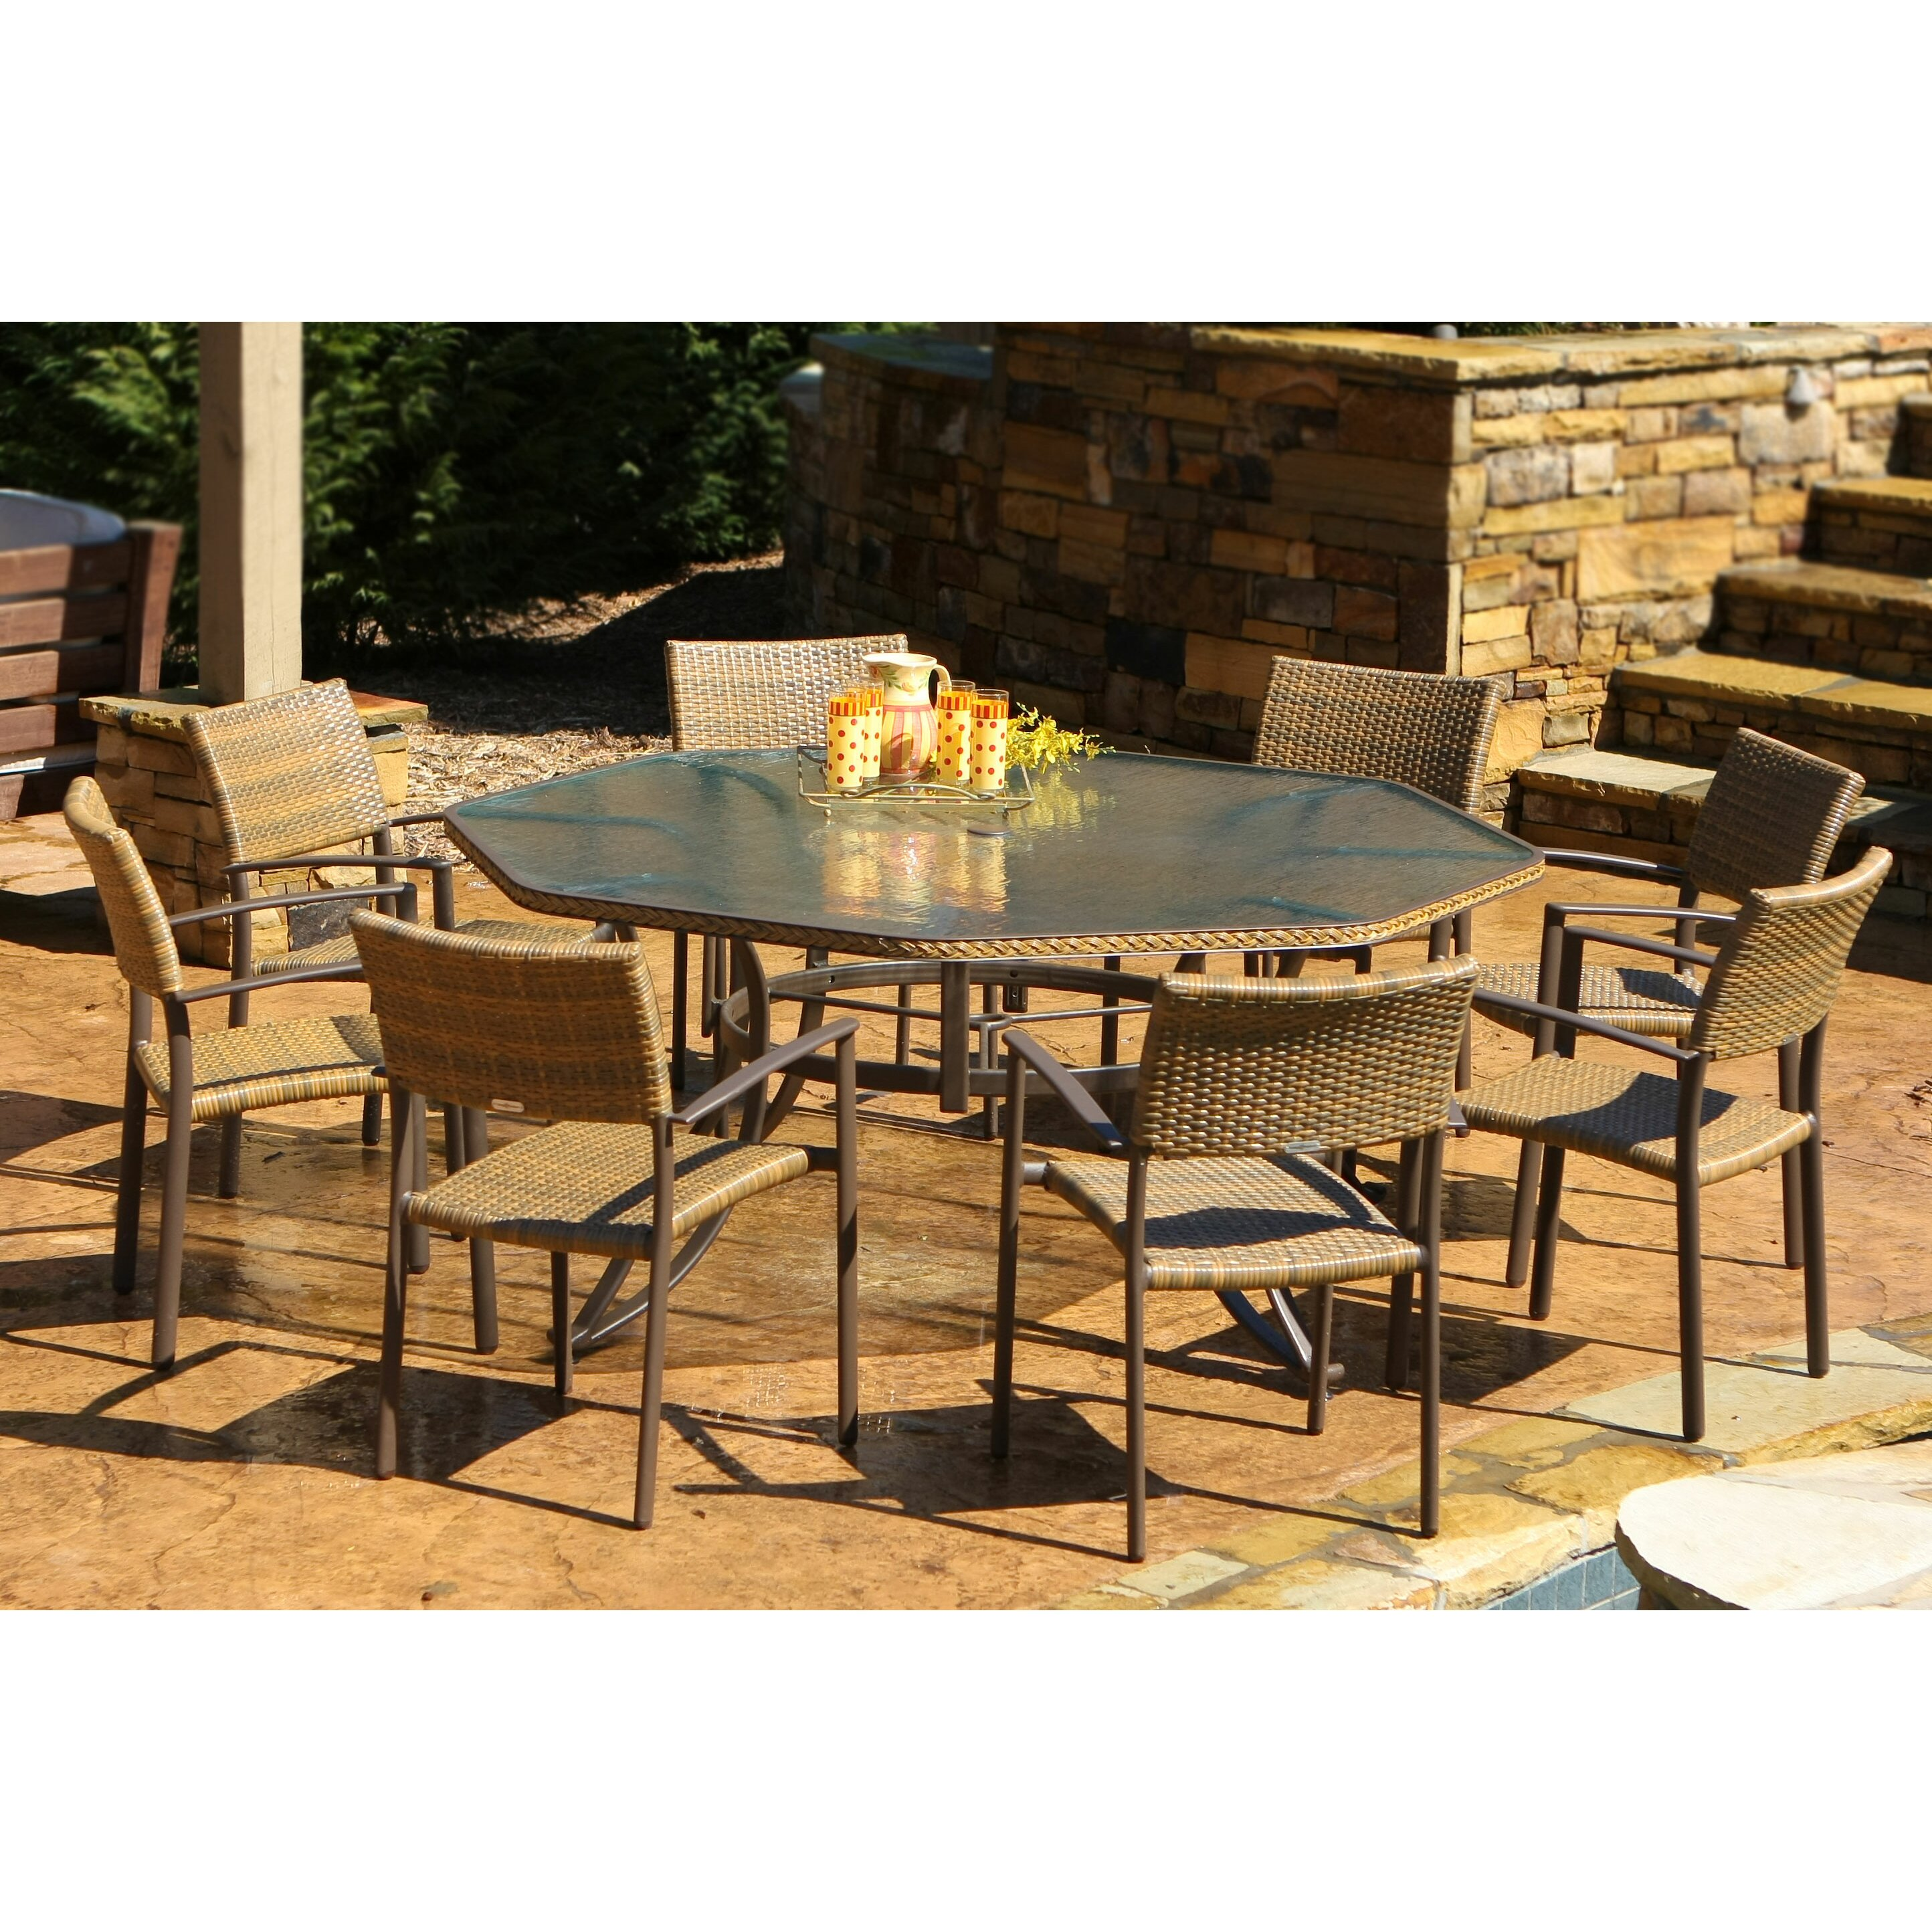 Eight Person Patio Dining Sets Darby Home Co SKU: DRBC1529. Full resolution  portrait, nominally Width 2888 Height 2888 pixels, portrait with #B48B17.